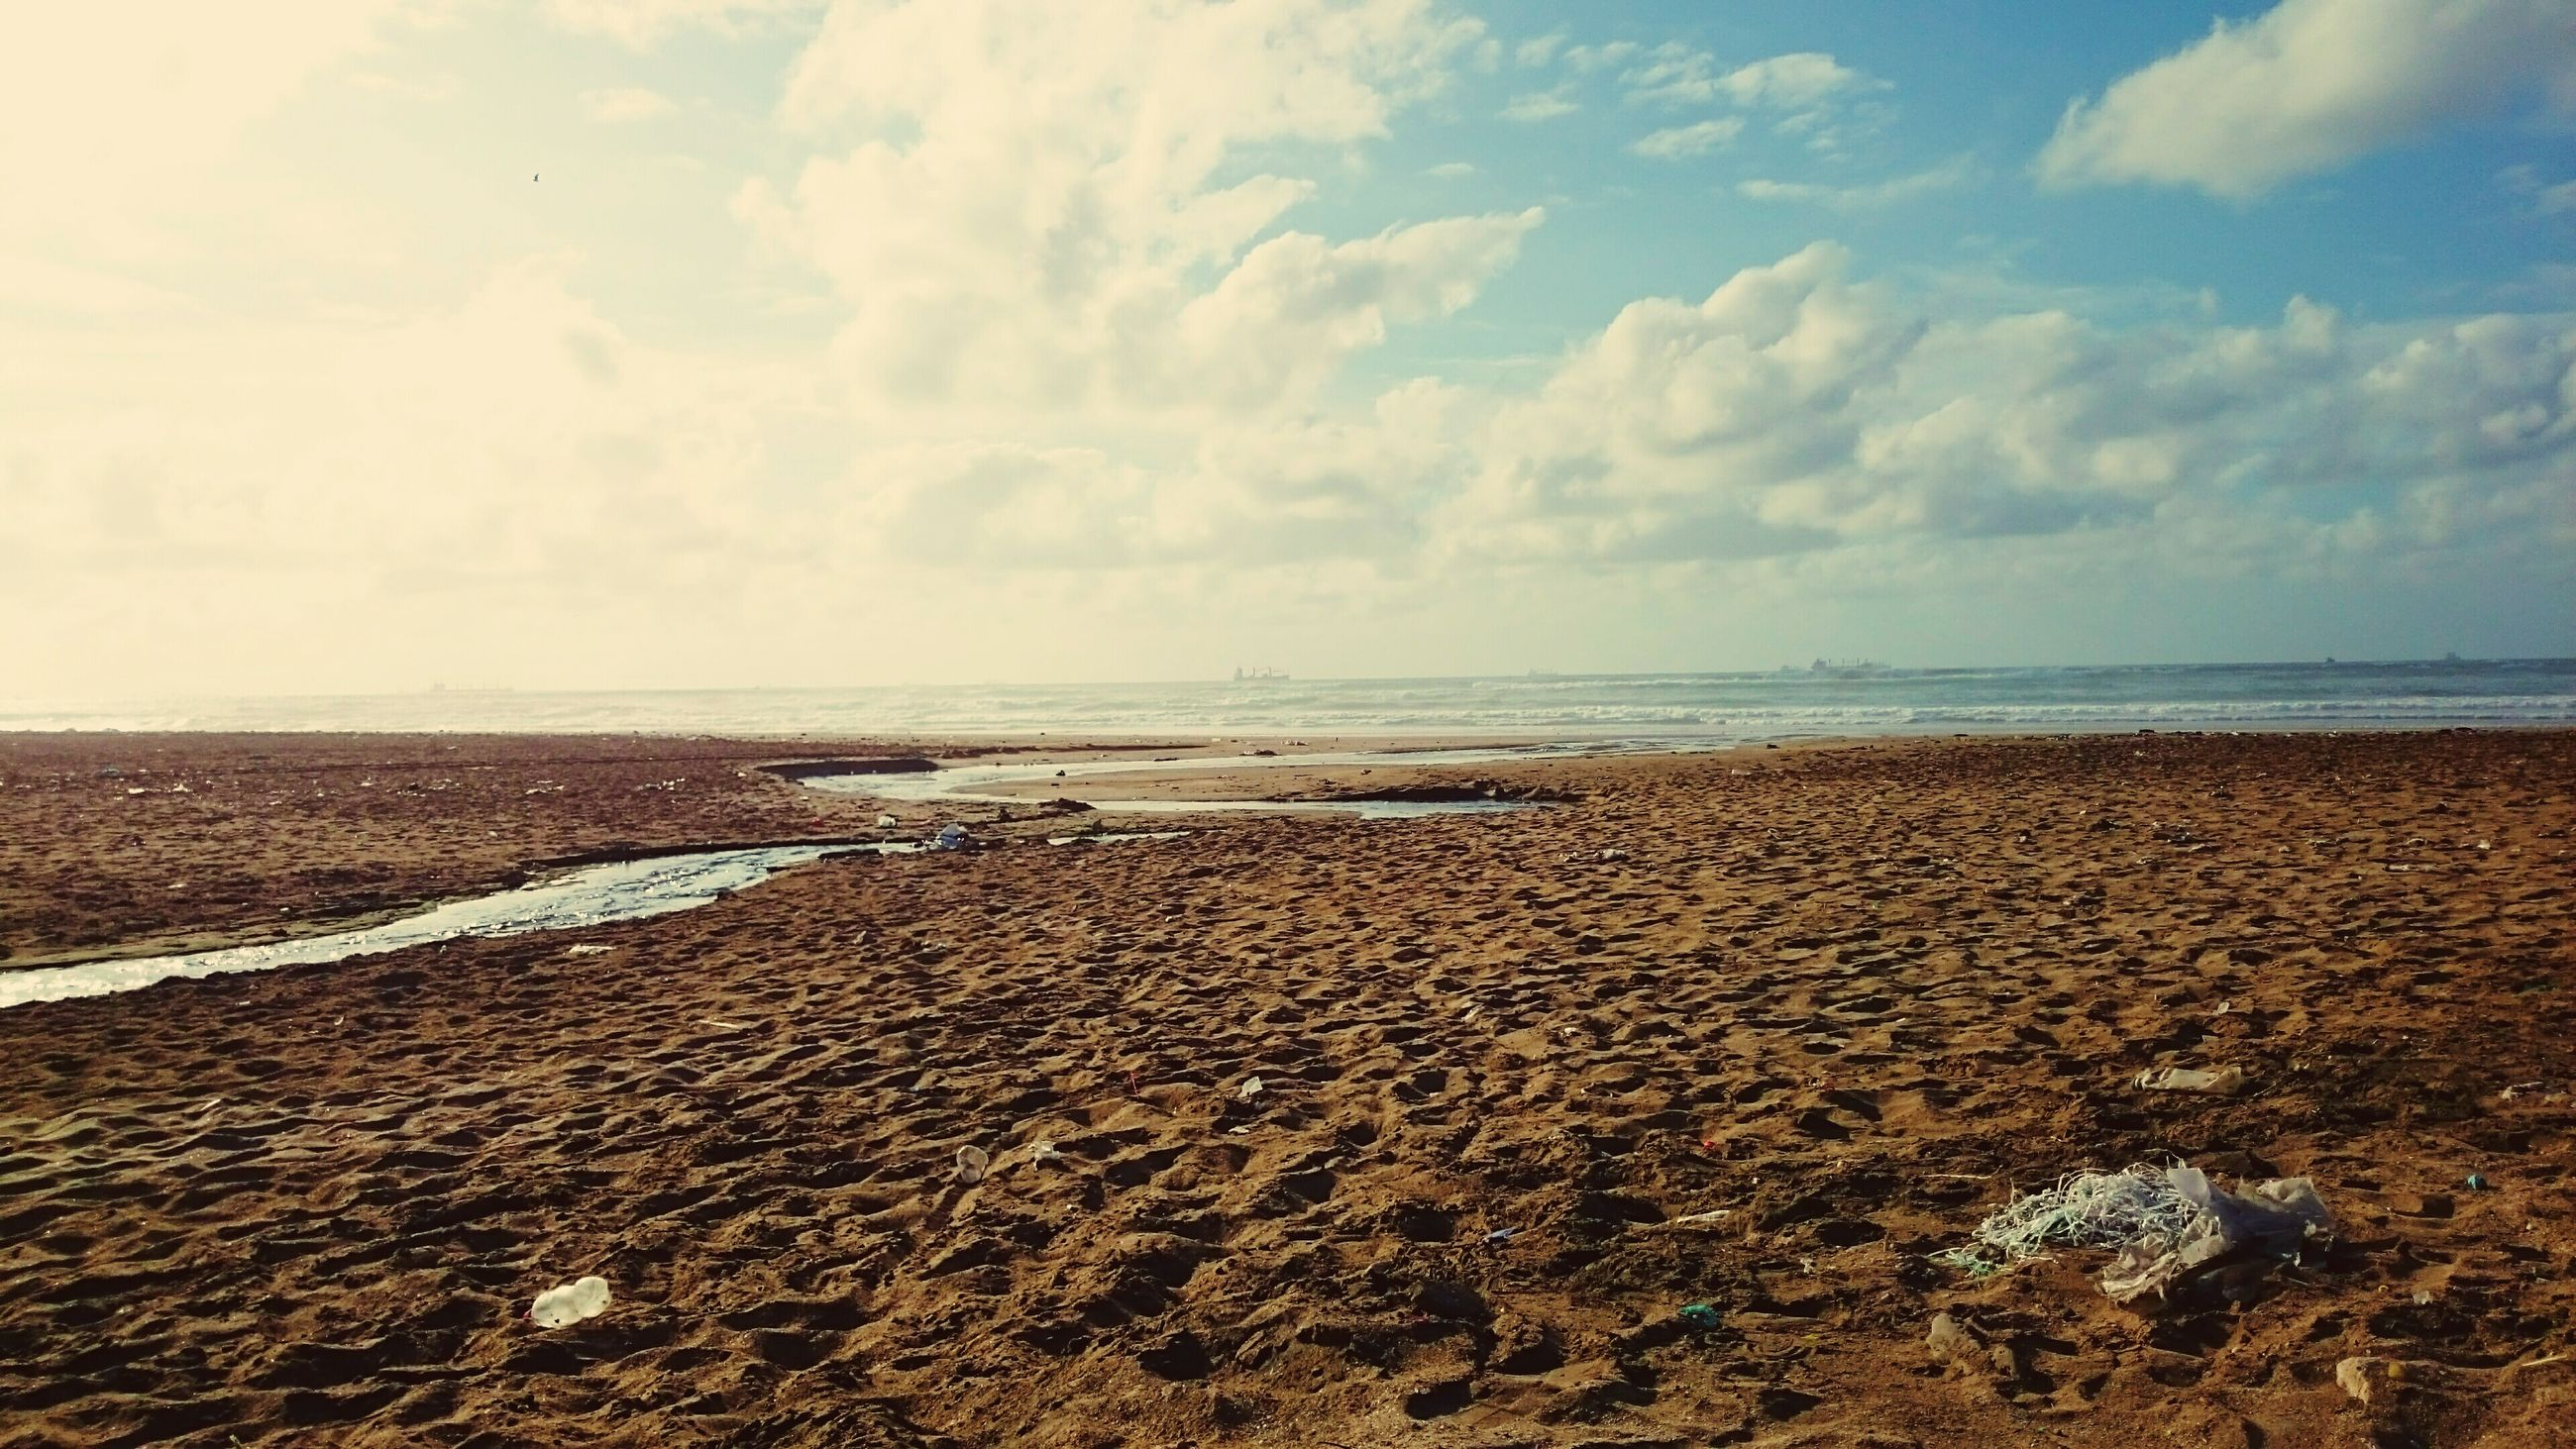 beach, sea, sand, shore, sky, nature, water, horizon over water, scenics, tranquility, tranquil scene, beauty in nature, outdoors, day, cloud - sky, no people, pebble beach